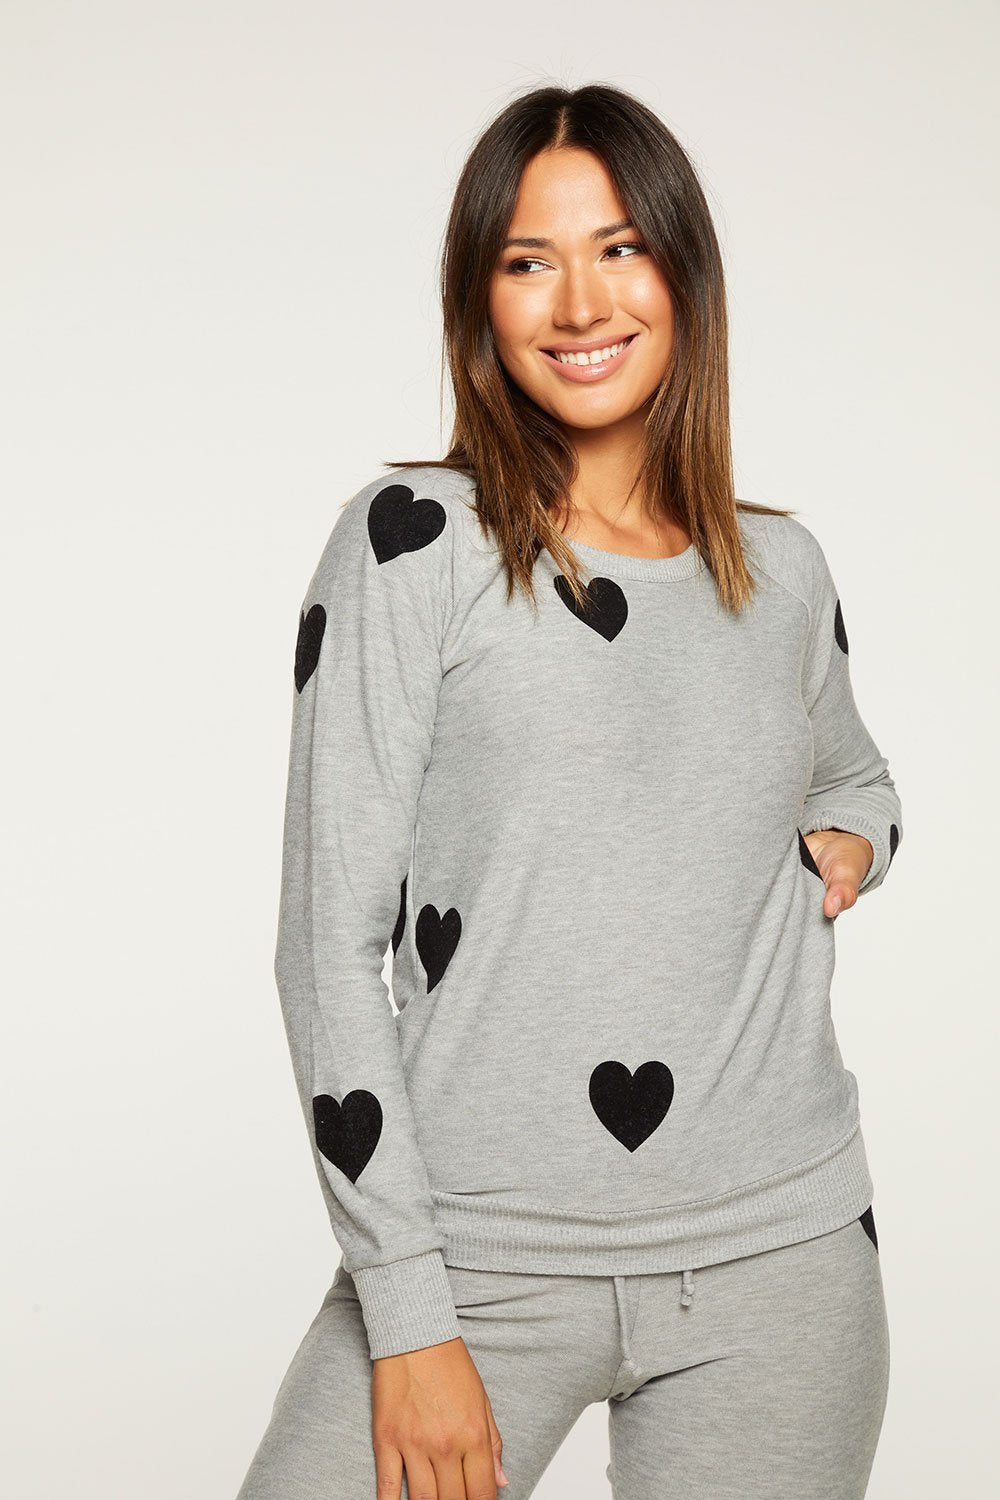 Flocked Hearts Sweater - sale -